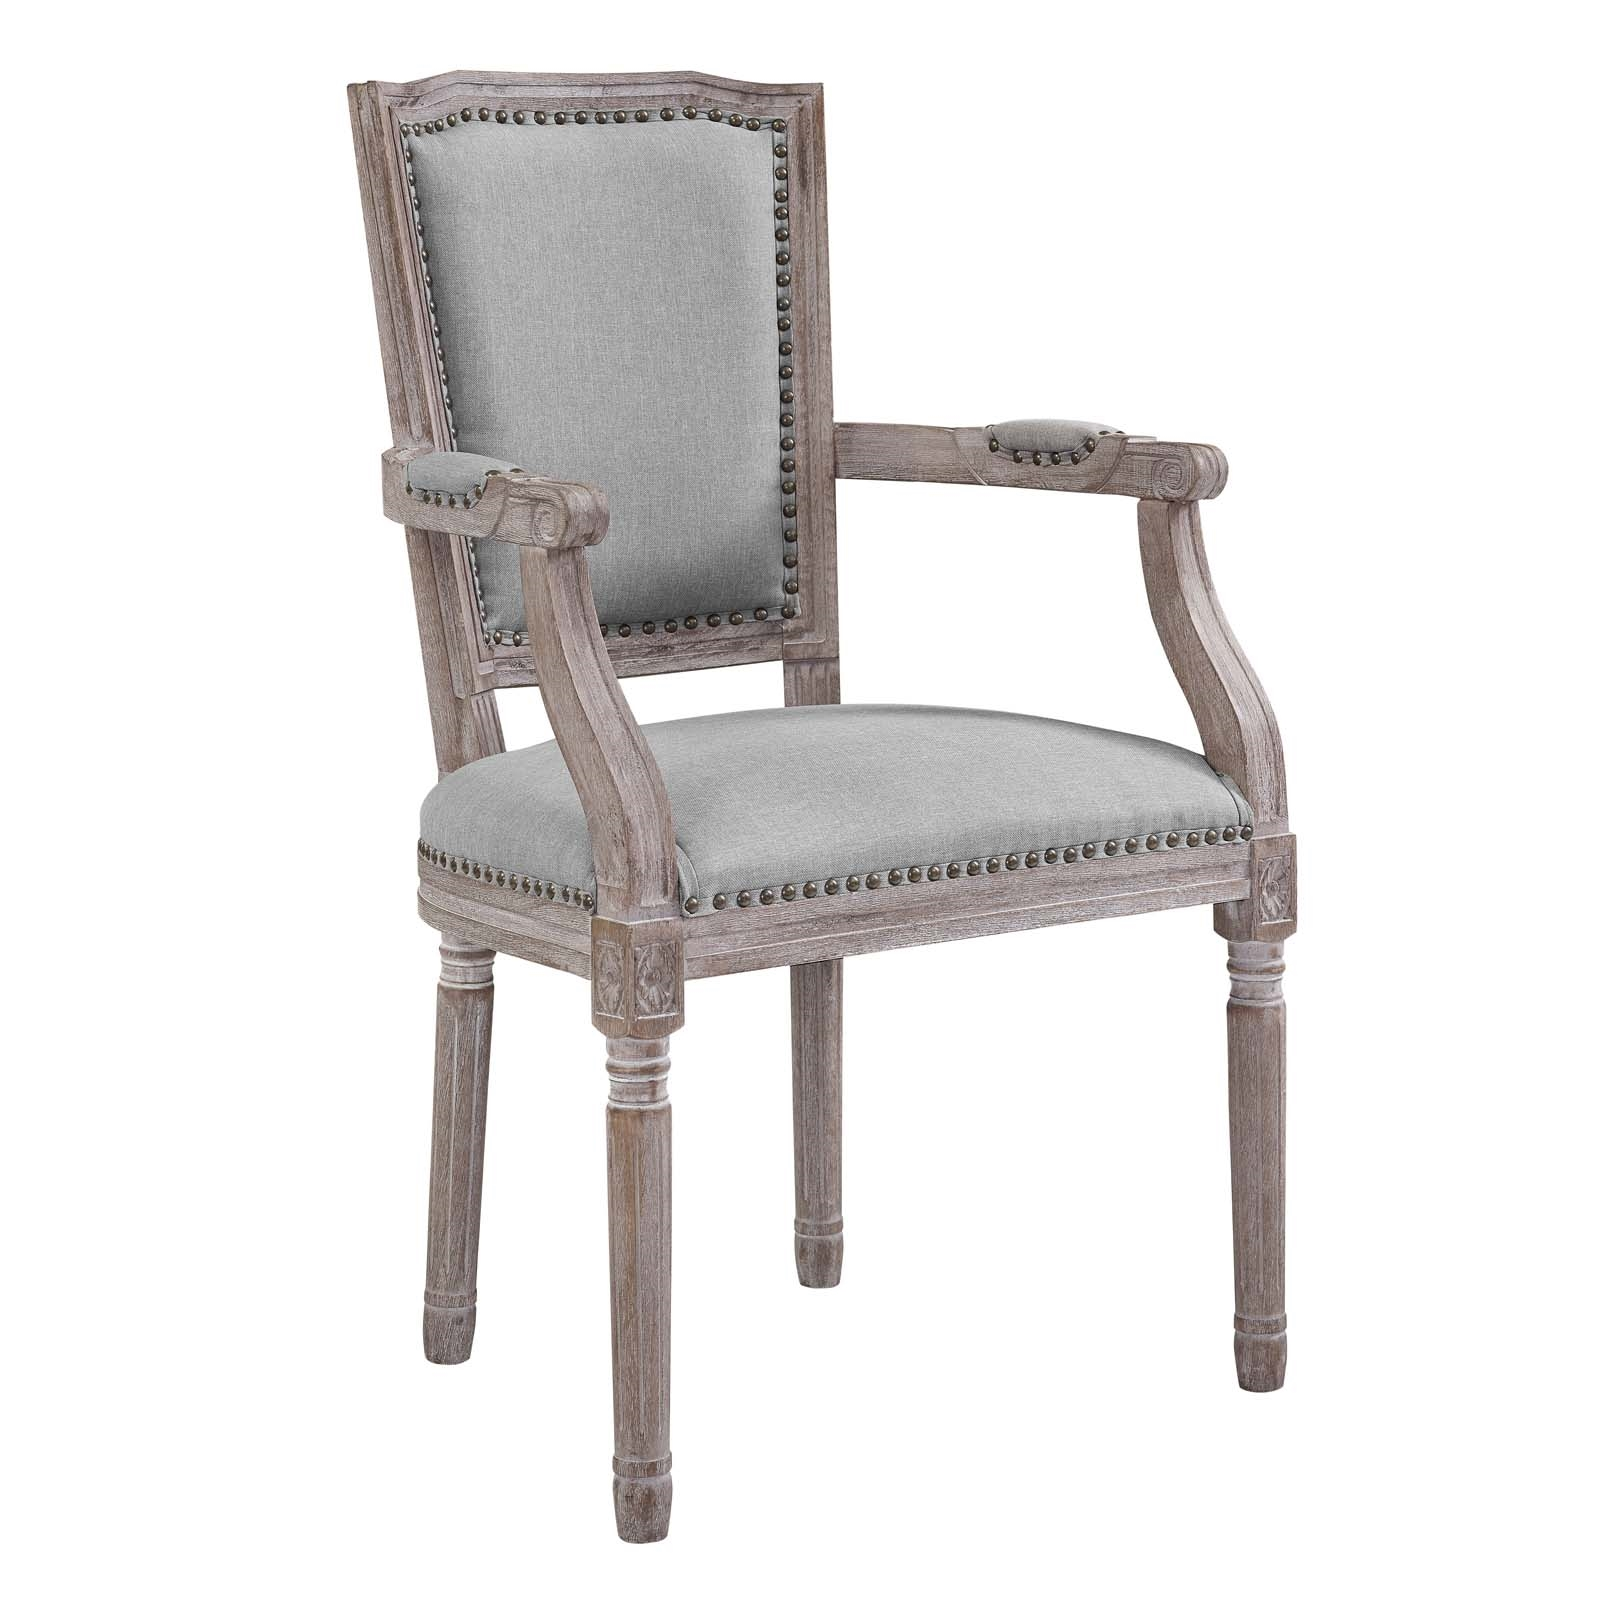 Penchant Vintage French Upholstered Fabric Dining Armchair in Light Gray